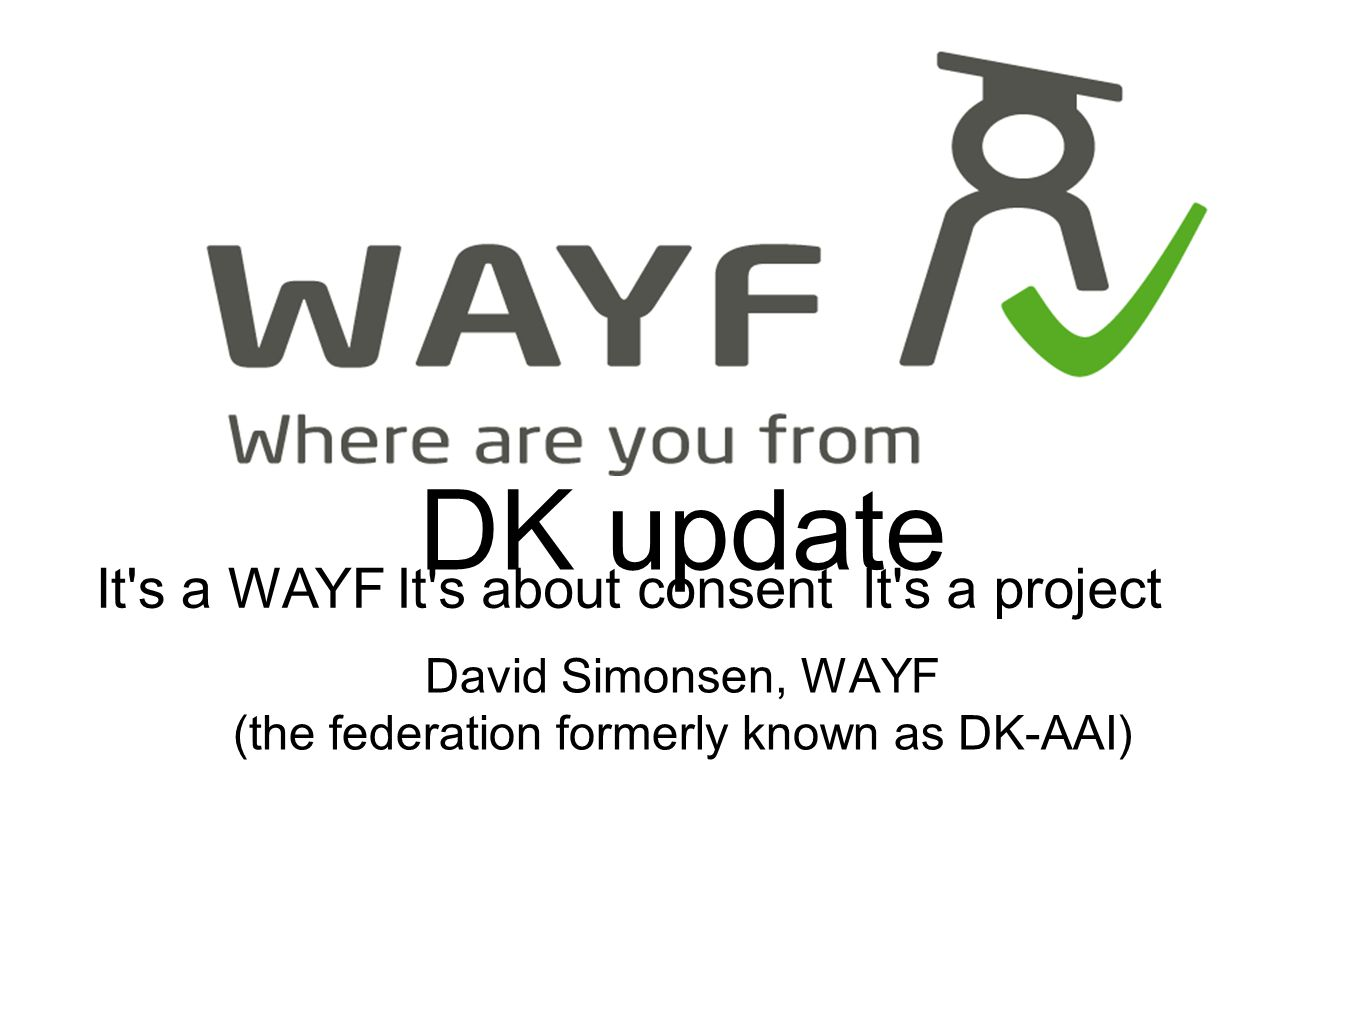 DK update David Simonsen, WAYF (the federation formerly known as DK-AAI) It s a WAYFIt s about consentIt s a project